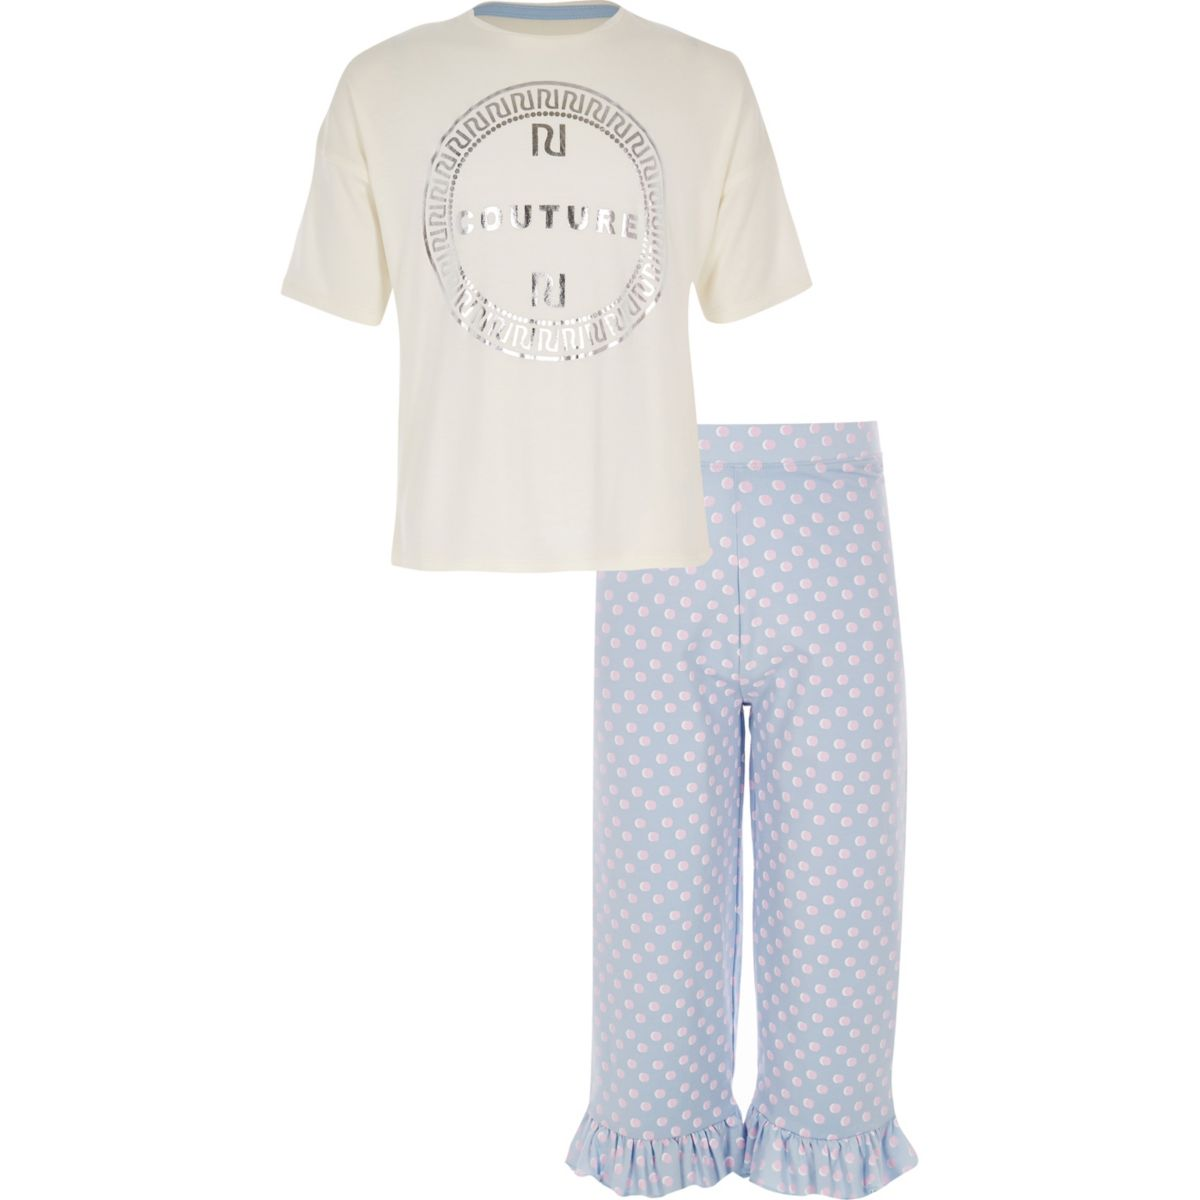 Girls white 'couture' T-shirt outfit